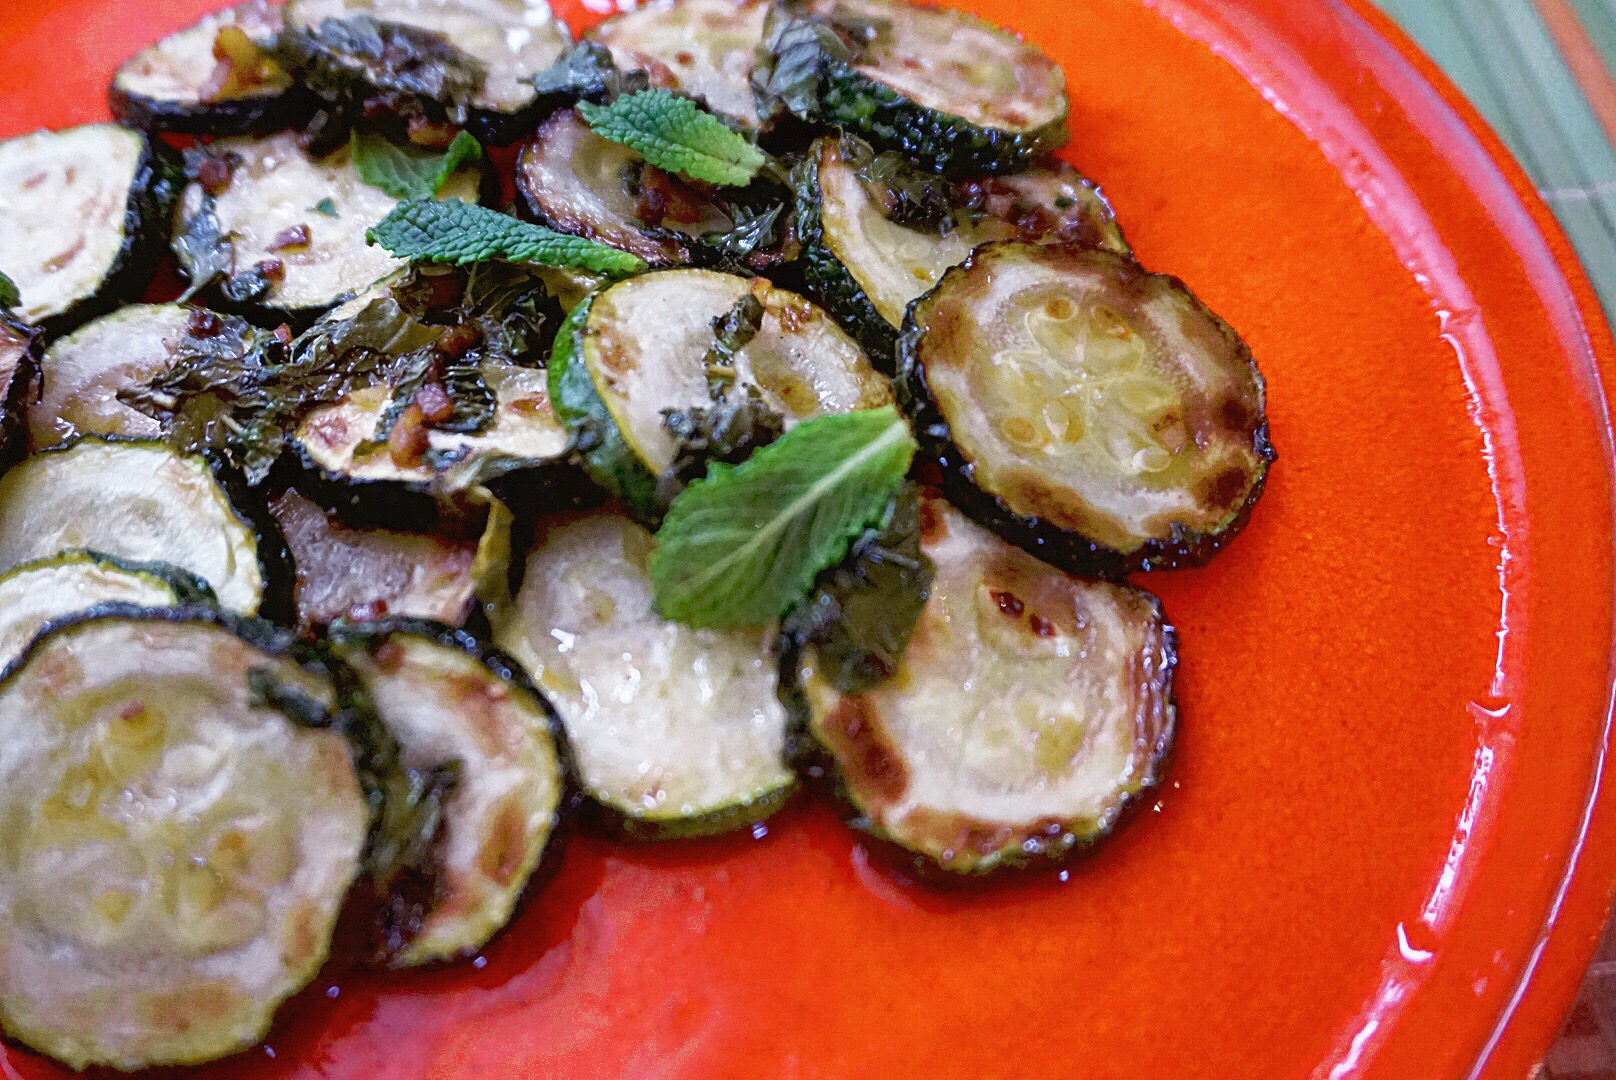 Marinated courgette